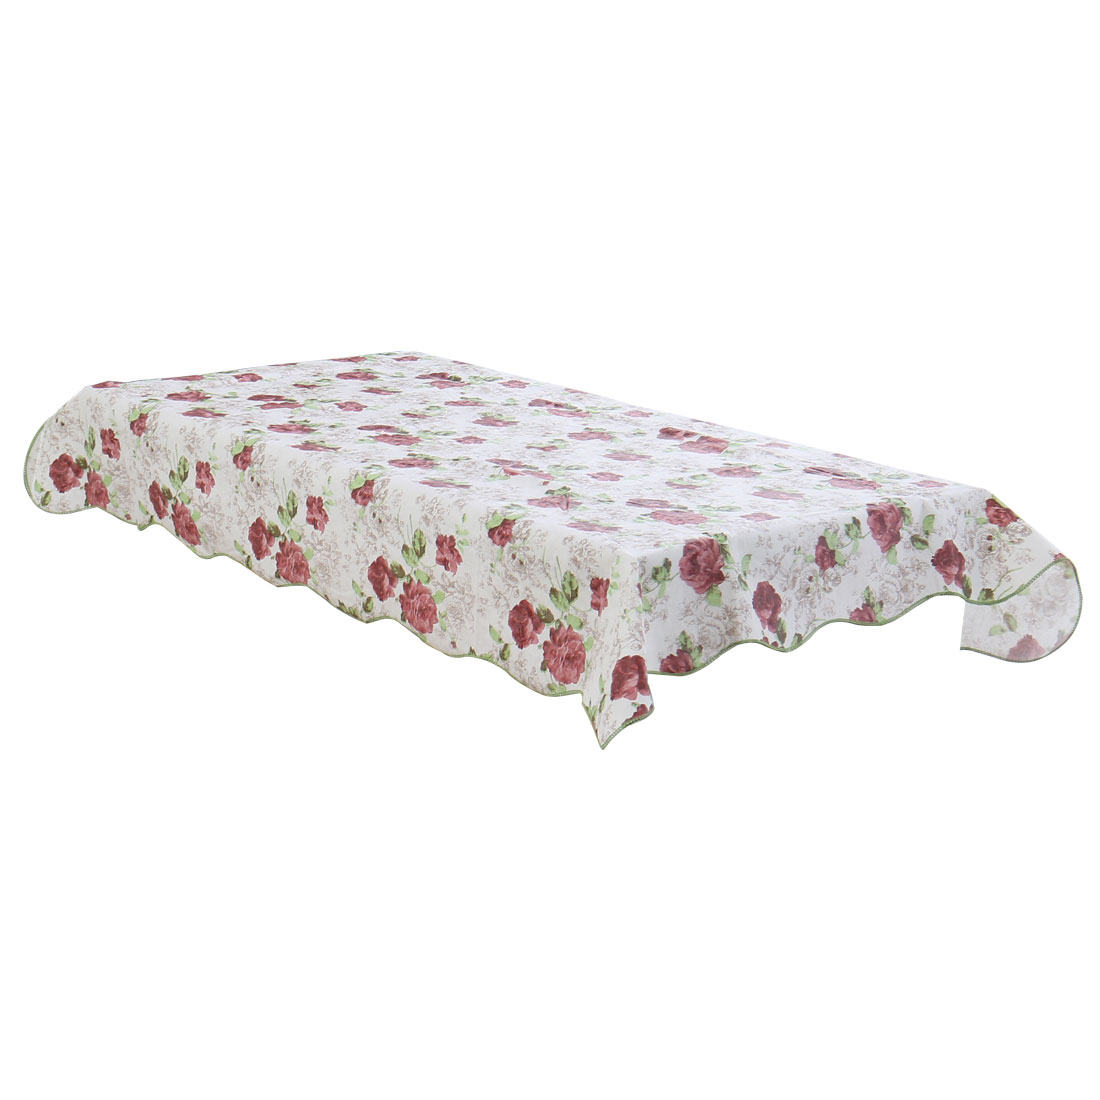 Home Picnic Daisy Pattern Water Resistant Oil-proof Tablecloth Table Cloth Cover 71 x 54 Inch